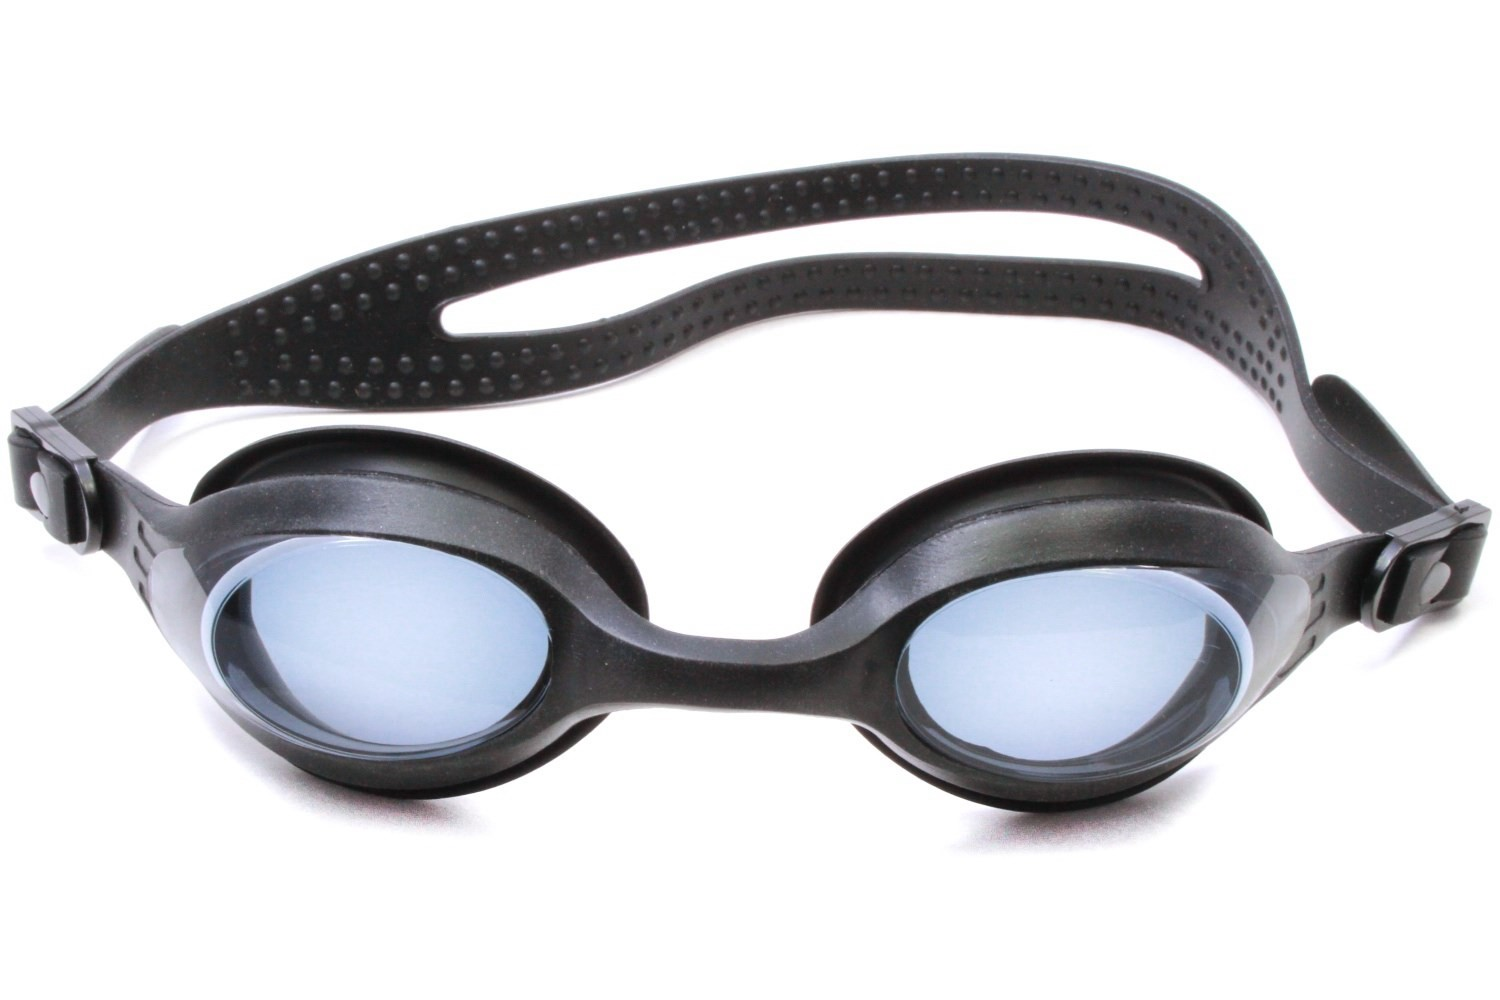 4945c8784f Review Splaqua Tinted Prescription Swimming Goggles